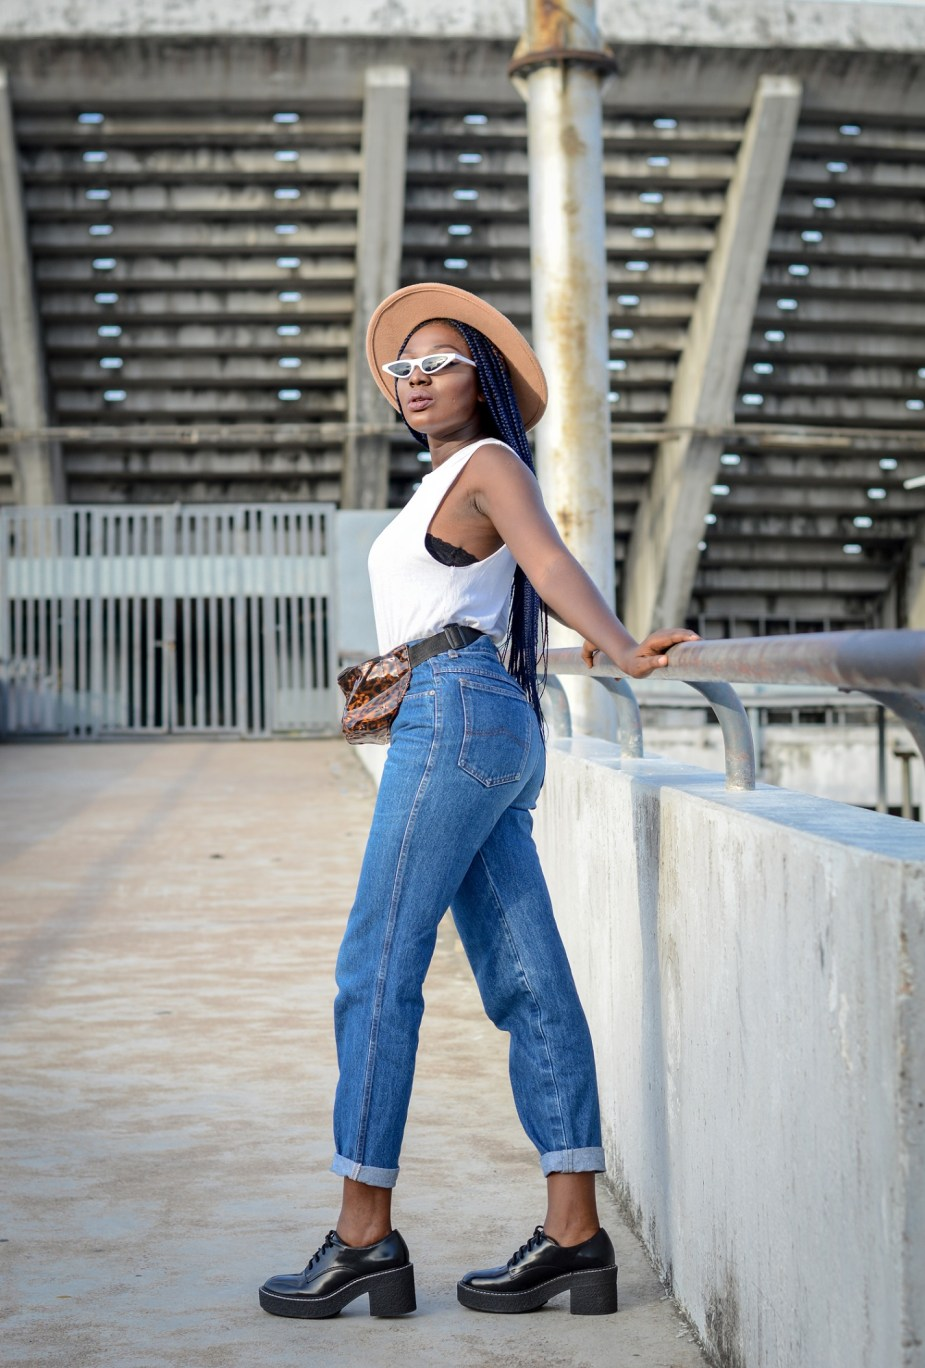 Muscle Tee street style outfit Nigerian fashion blogger Wumi Tuase